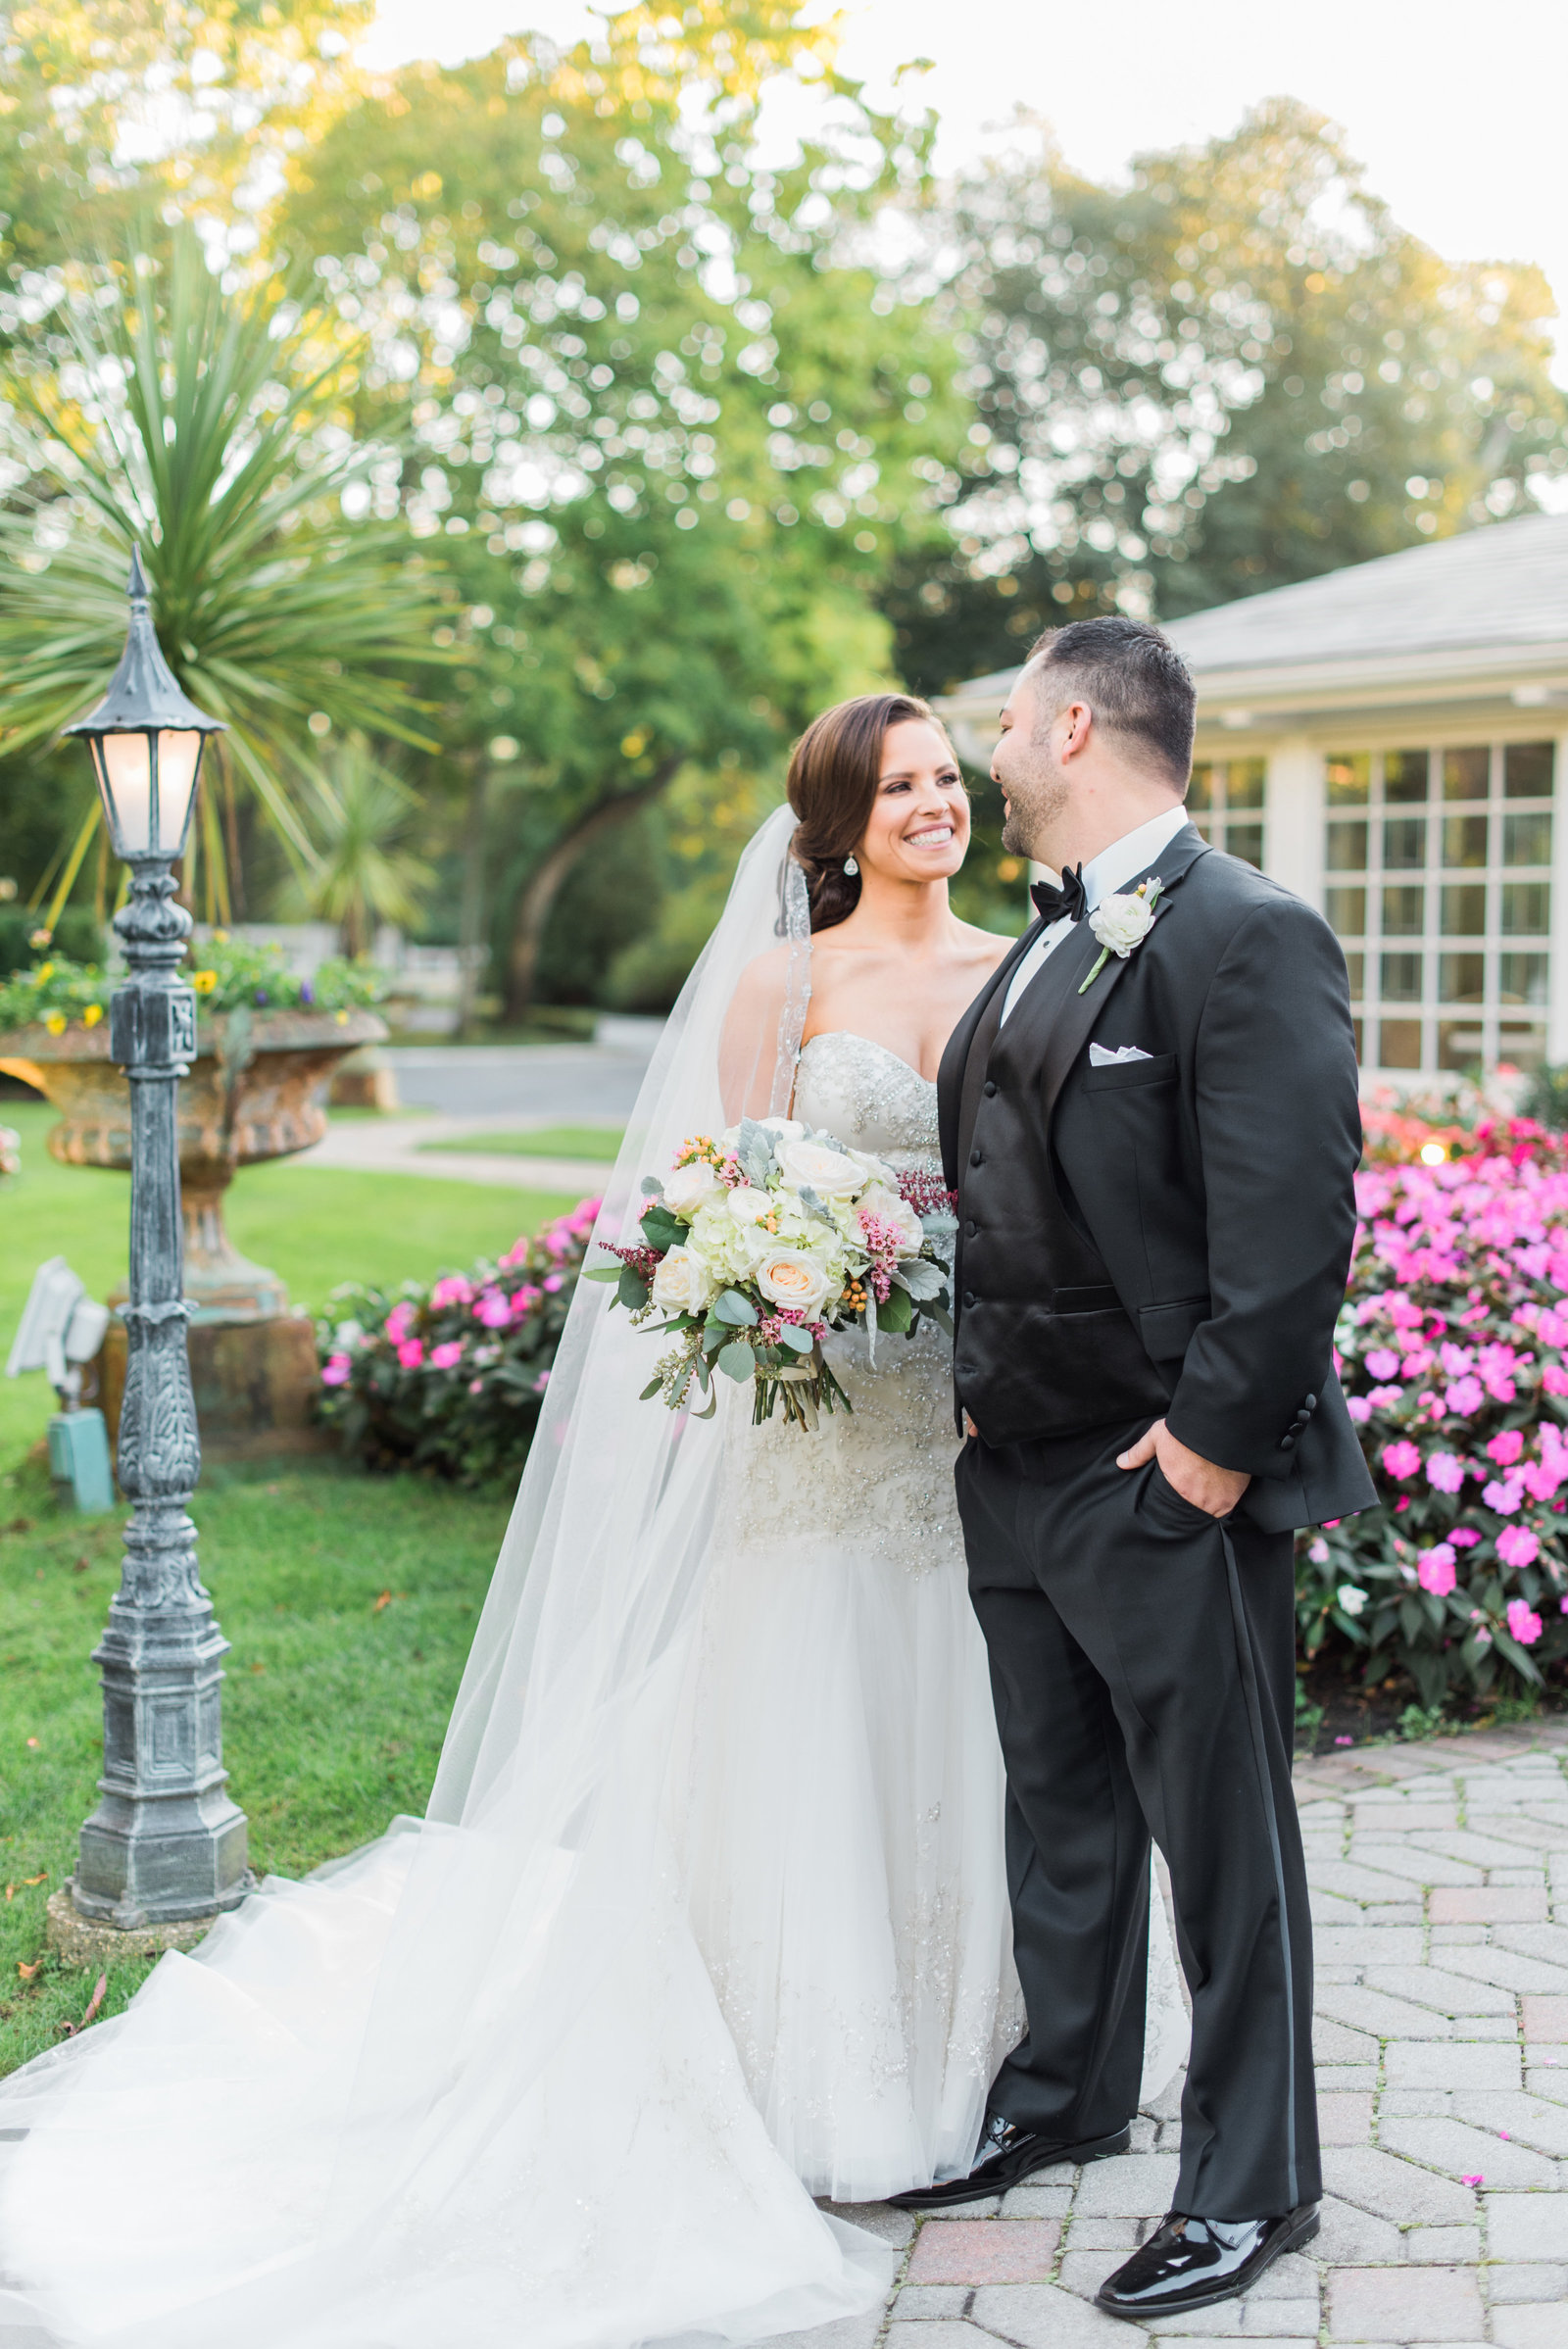 NJ-Shadowbrook-At-Shrewsberry-Shrewsberry-Southern-Inspired-Wedding-Photo-002